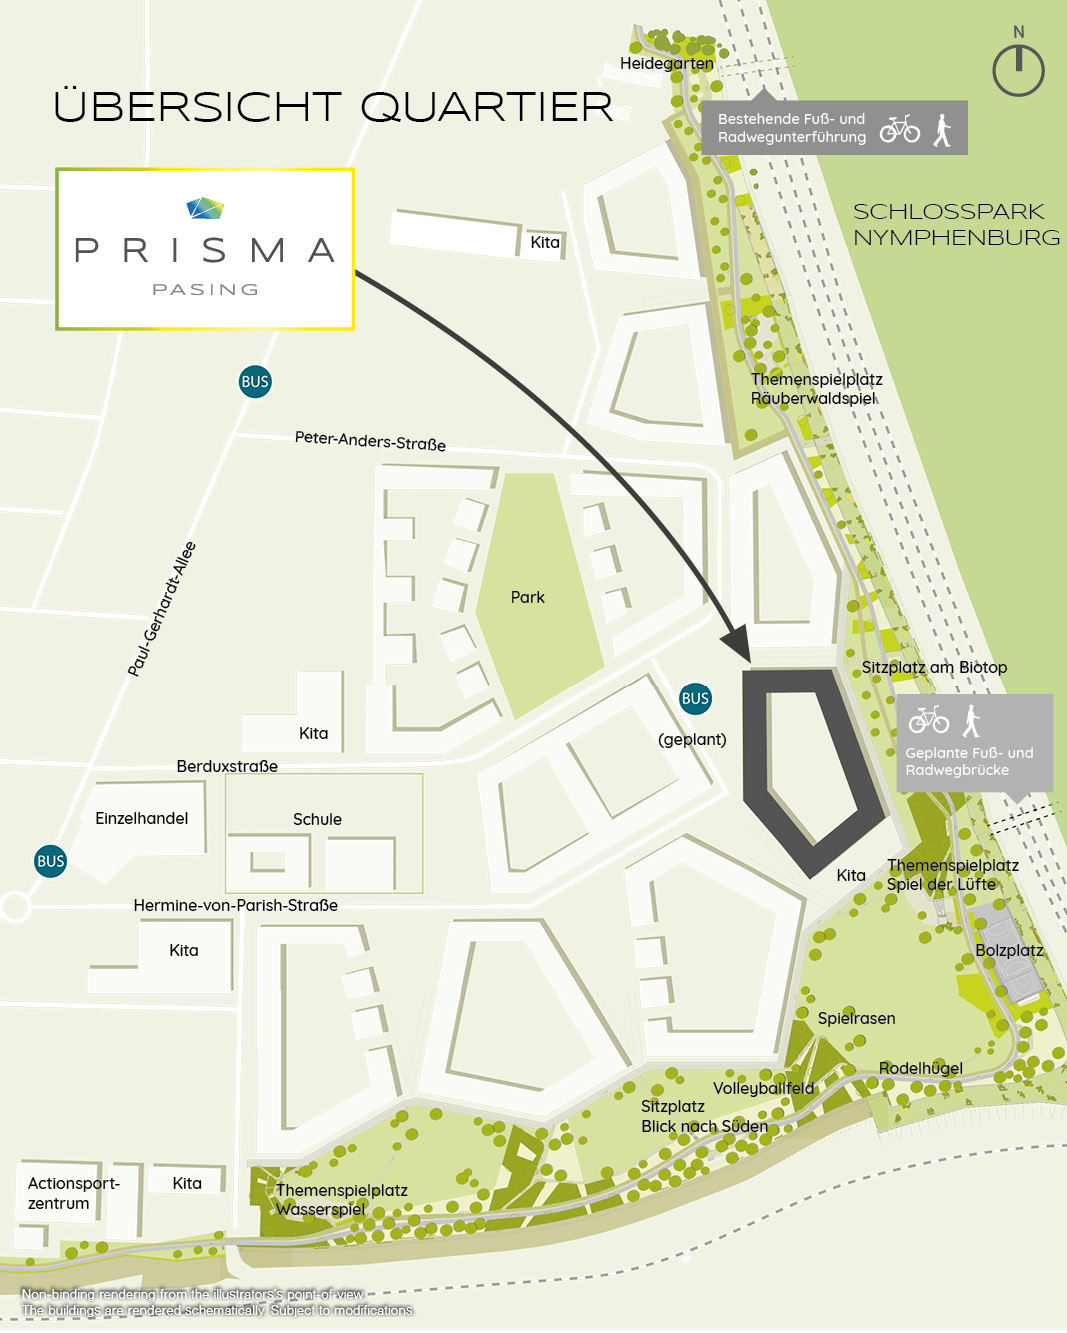 Property Prisma Pasing - neighborhood plan